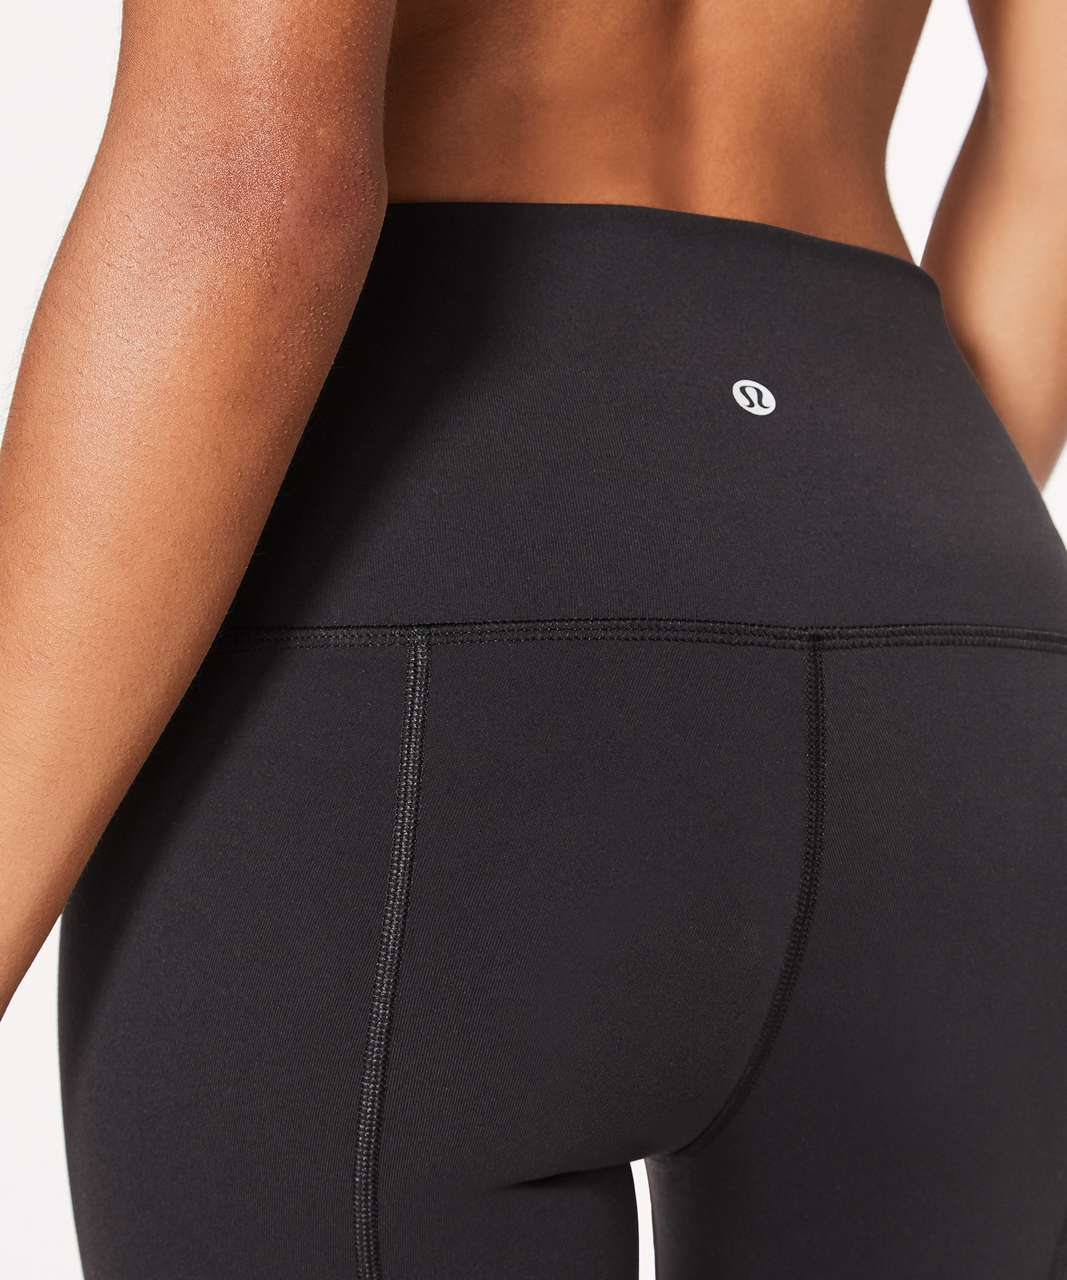 "Lululemon Wunder Under Crop II (Special Edition) *Scallop 23"" - Black (First Release)"